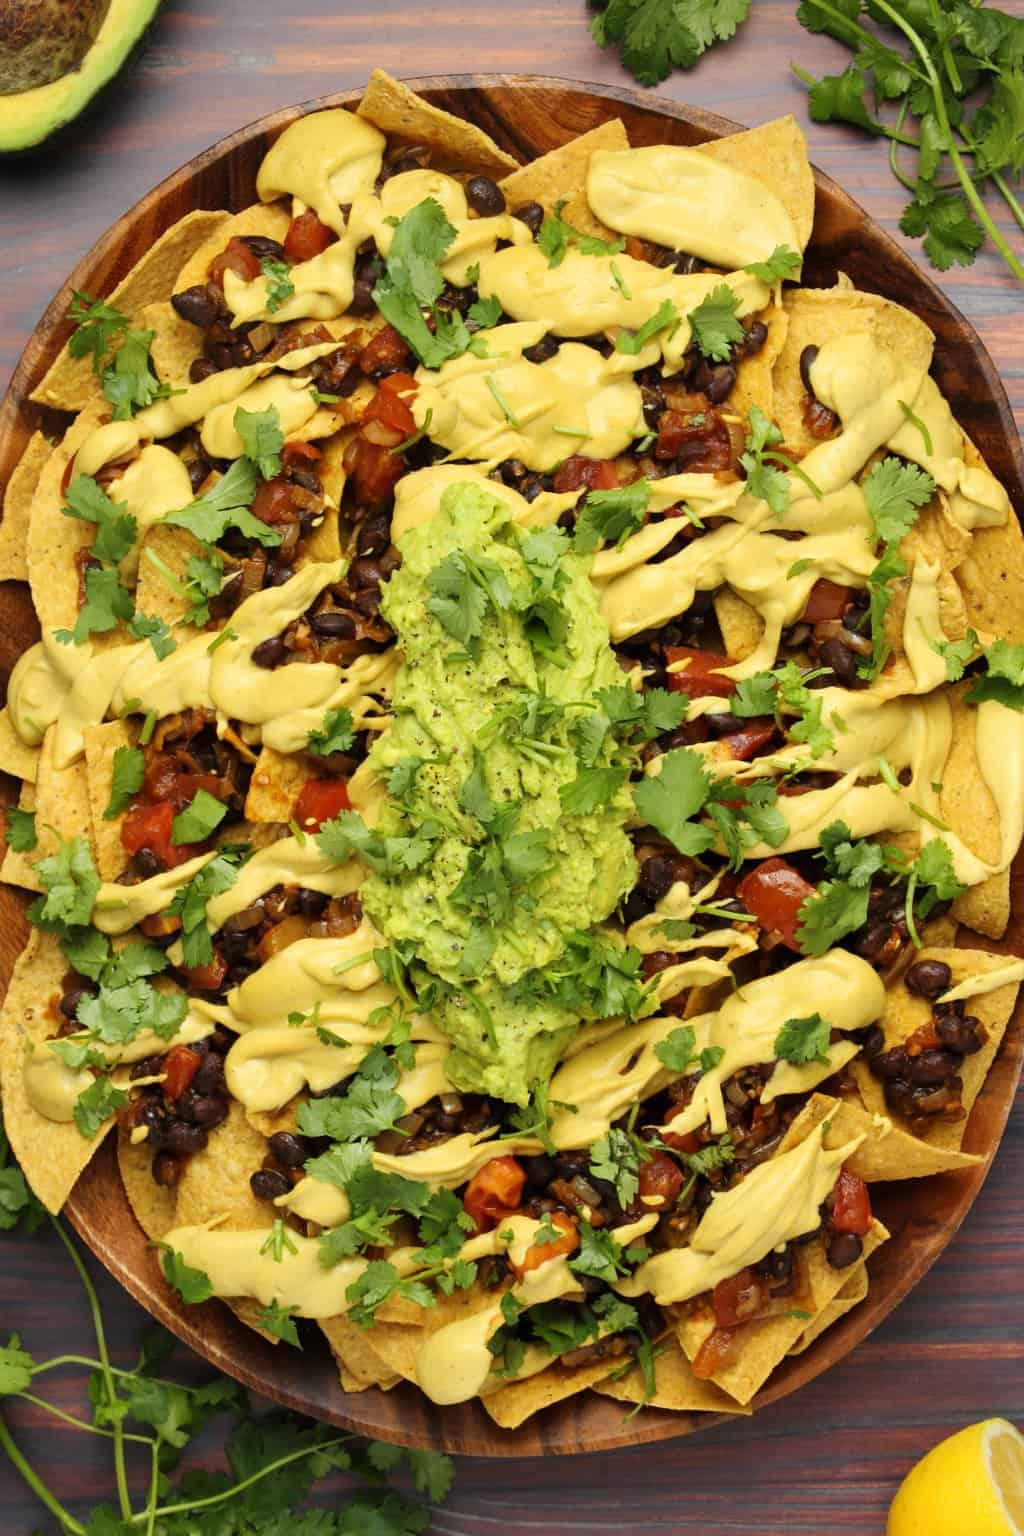 Vegan nacho cheese poured over fully loaded nachos with black beans, salsa and guacamole.